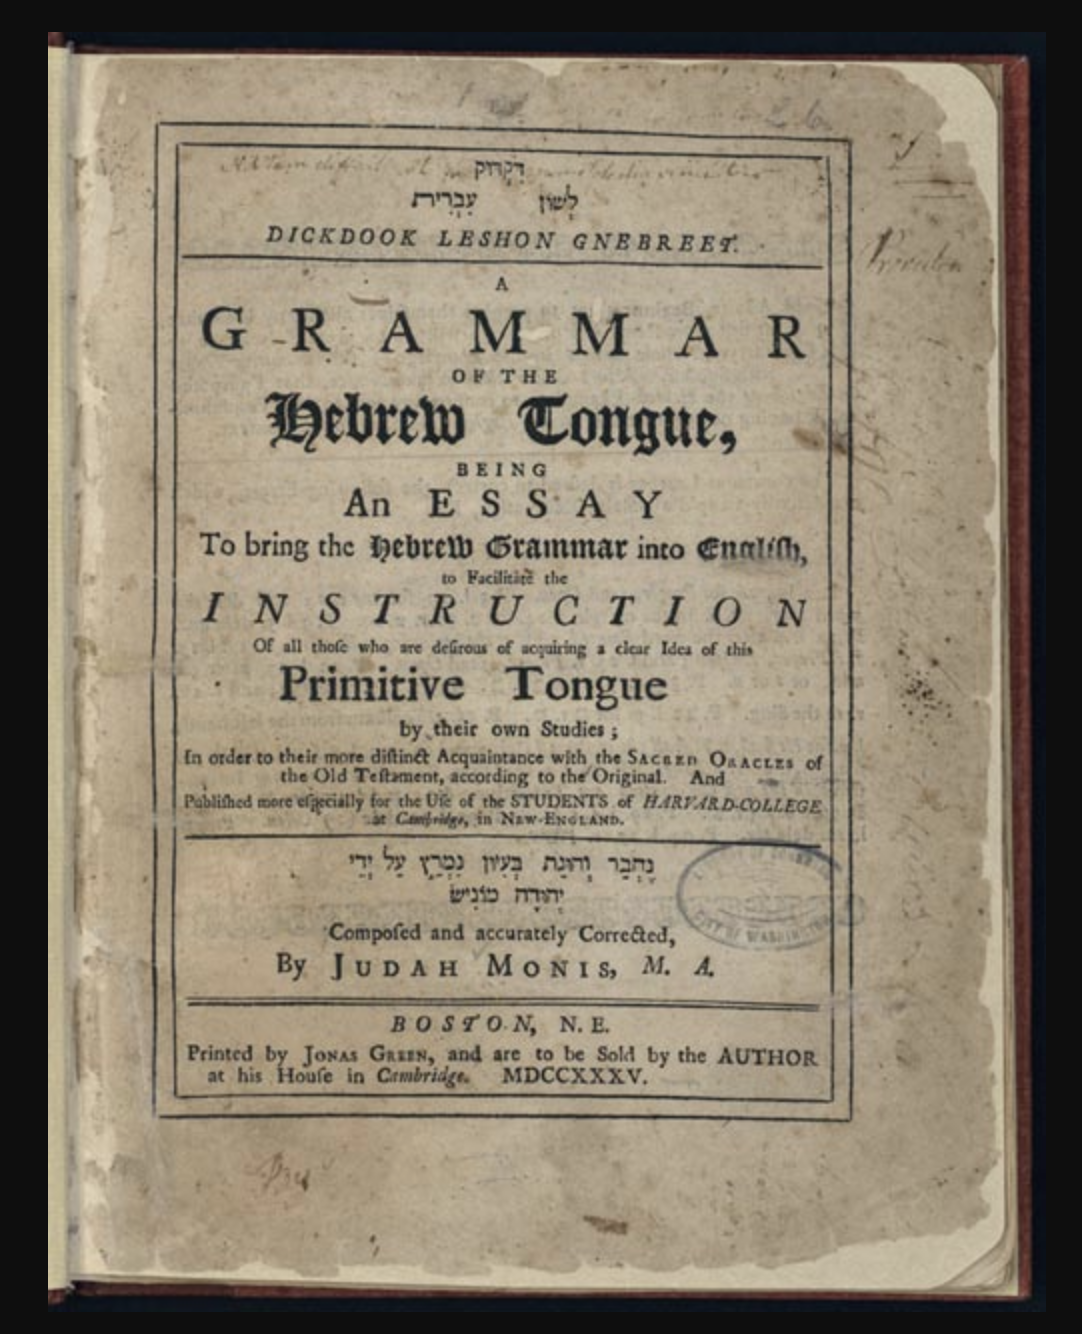 """Image shows a book's title page for """"Dickdoon Leshon Gnebreet: A Grammar of the Hebrew Tongue"""" by Judah Monis."""